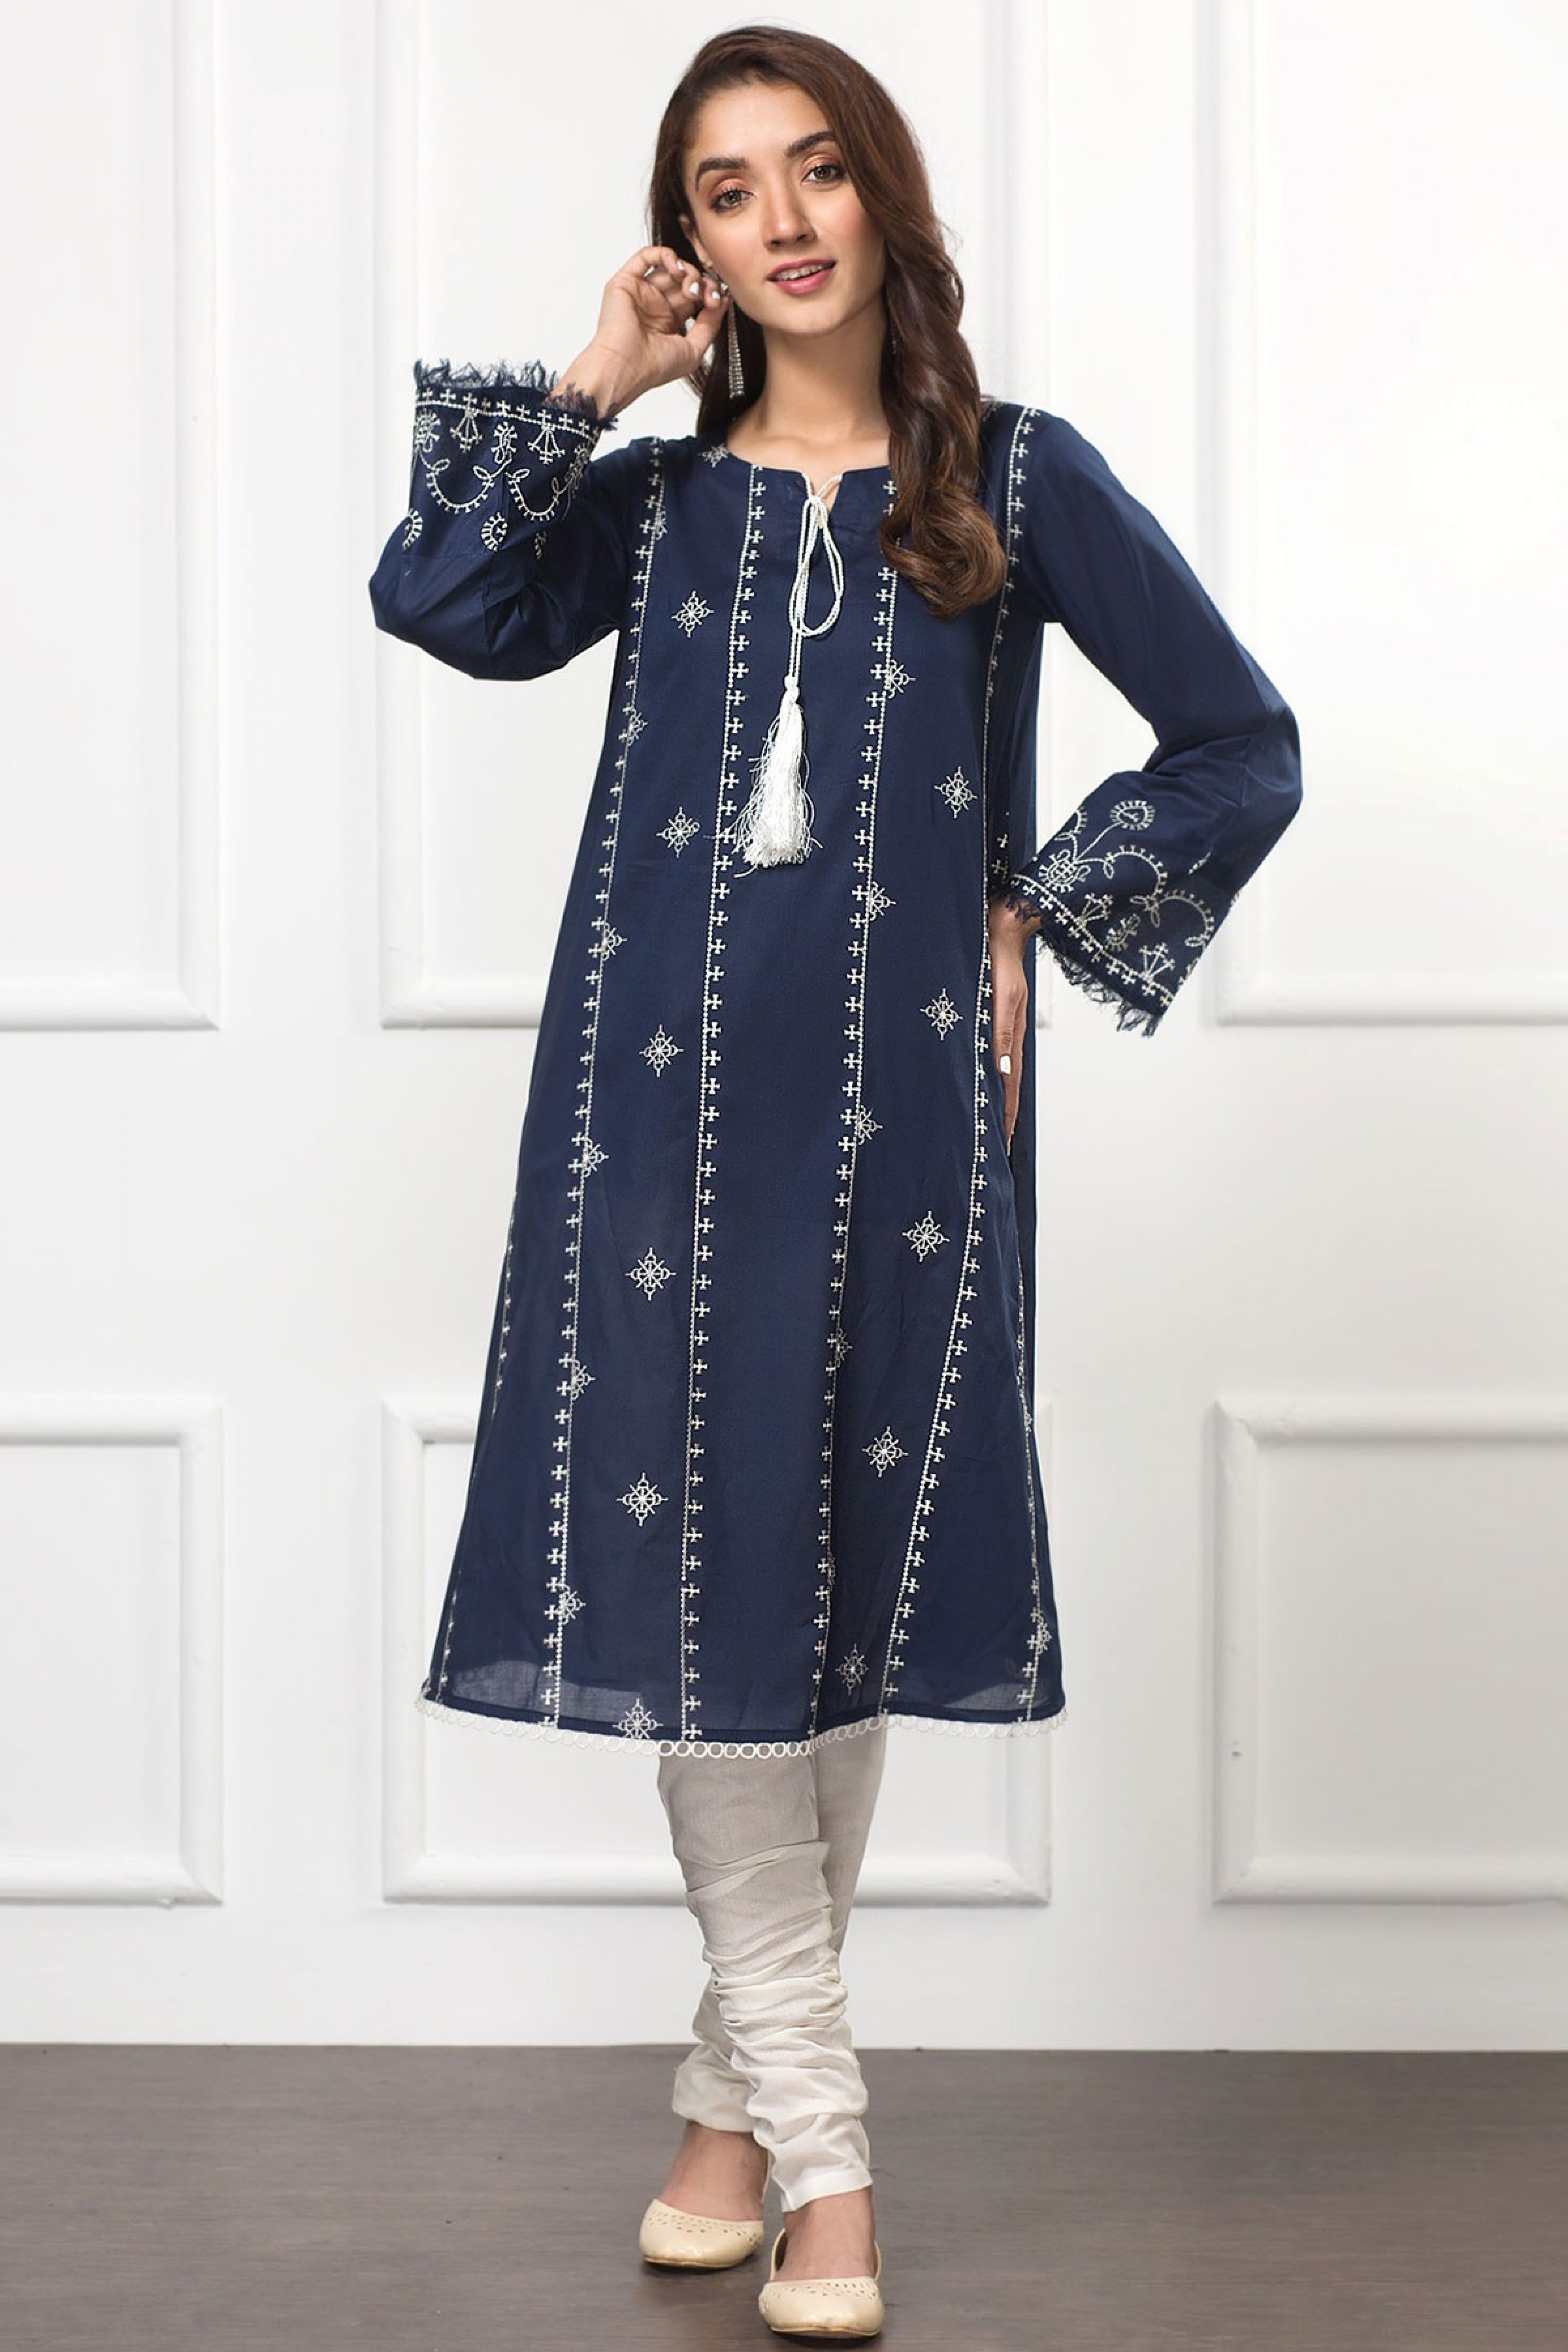 DAZZLE BLUE(Embroidered Frock)